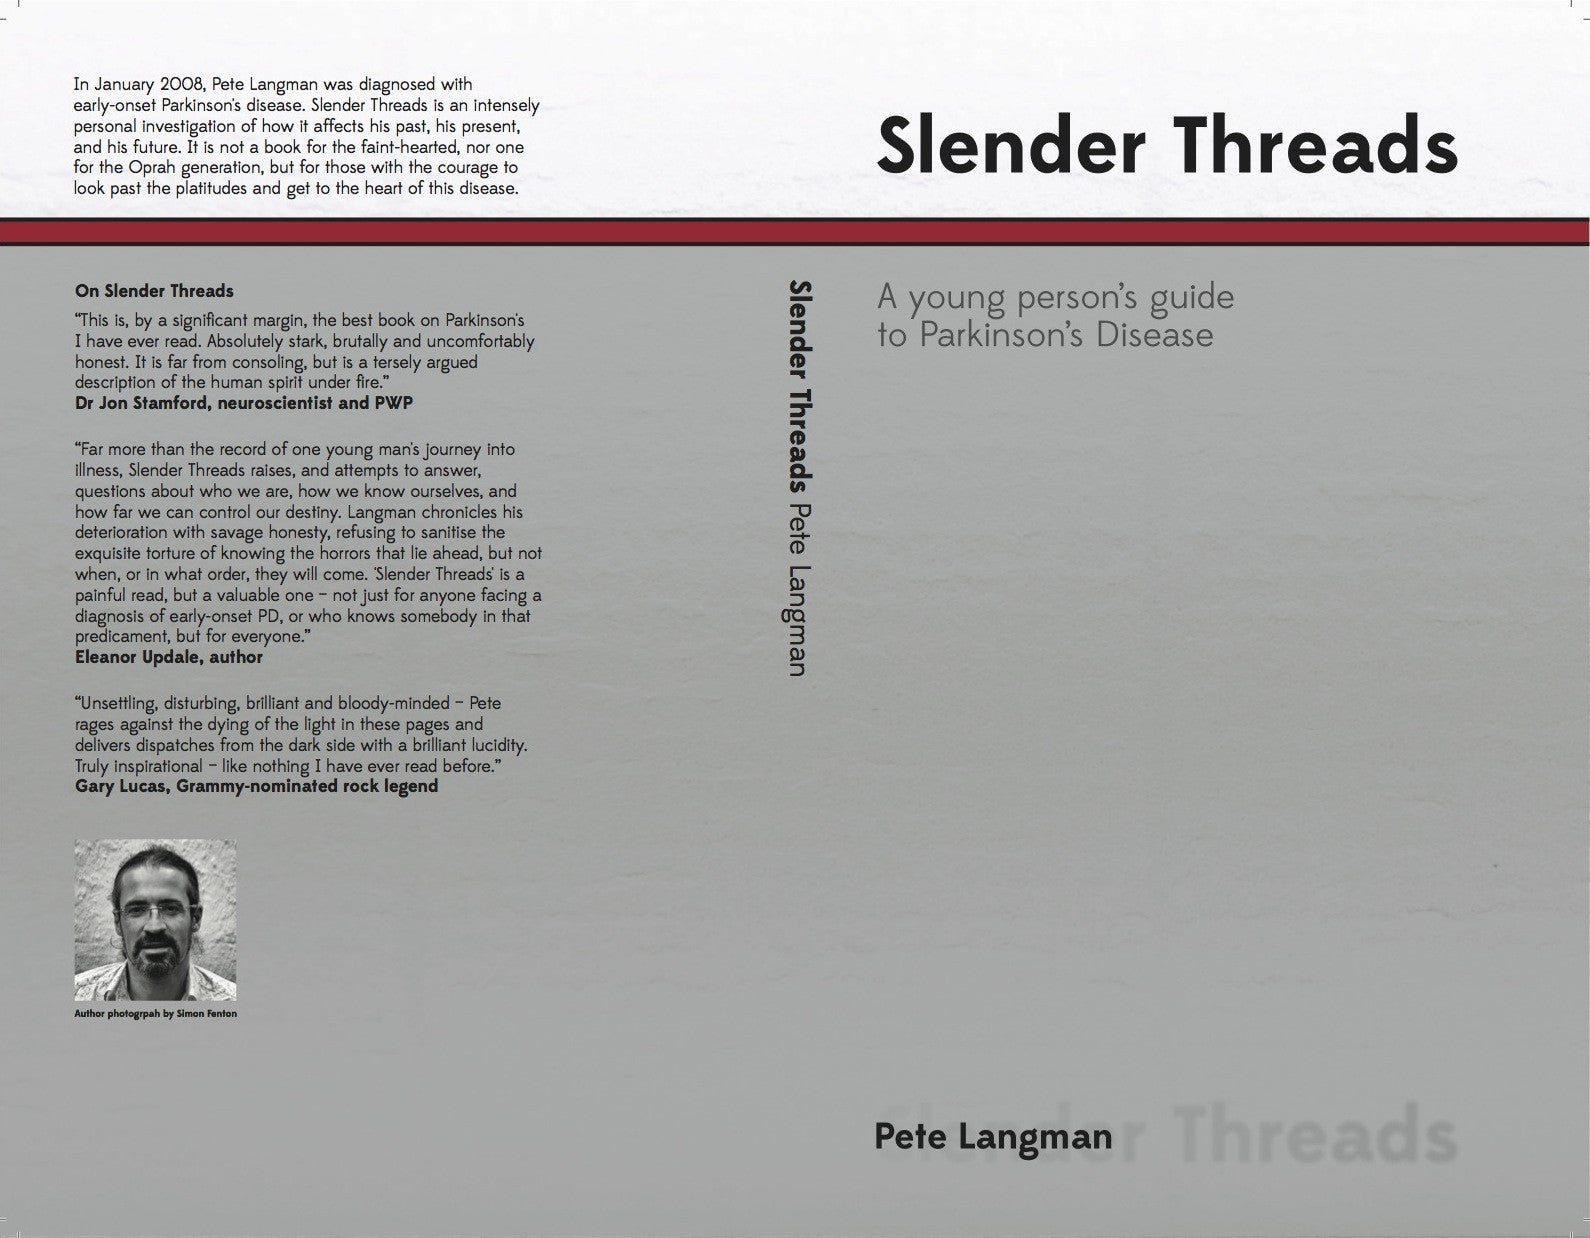 Slender Threads: a young person's guide to Parkinson's disease